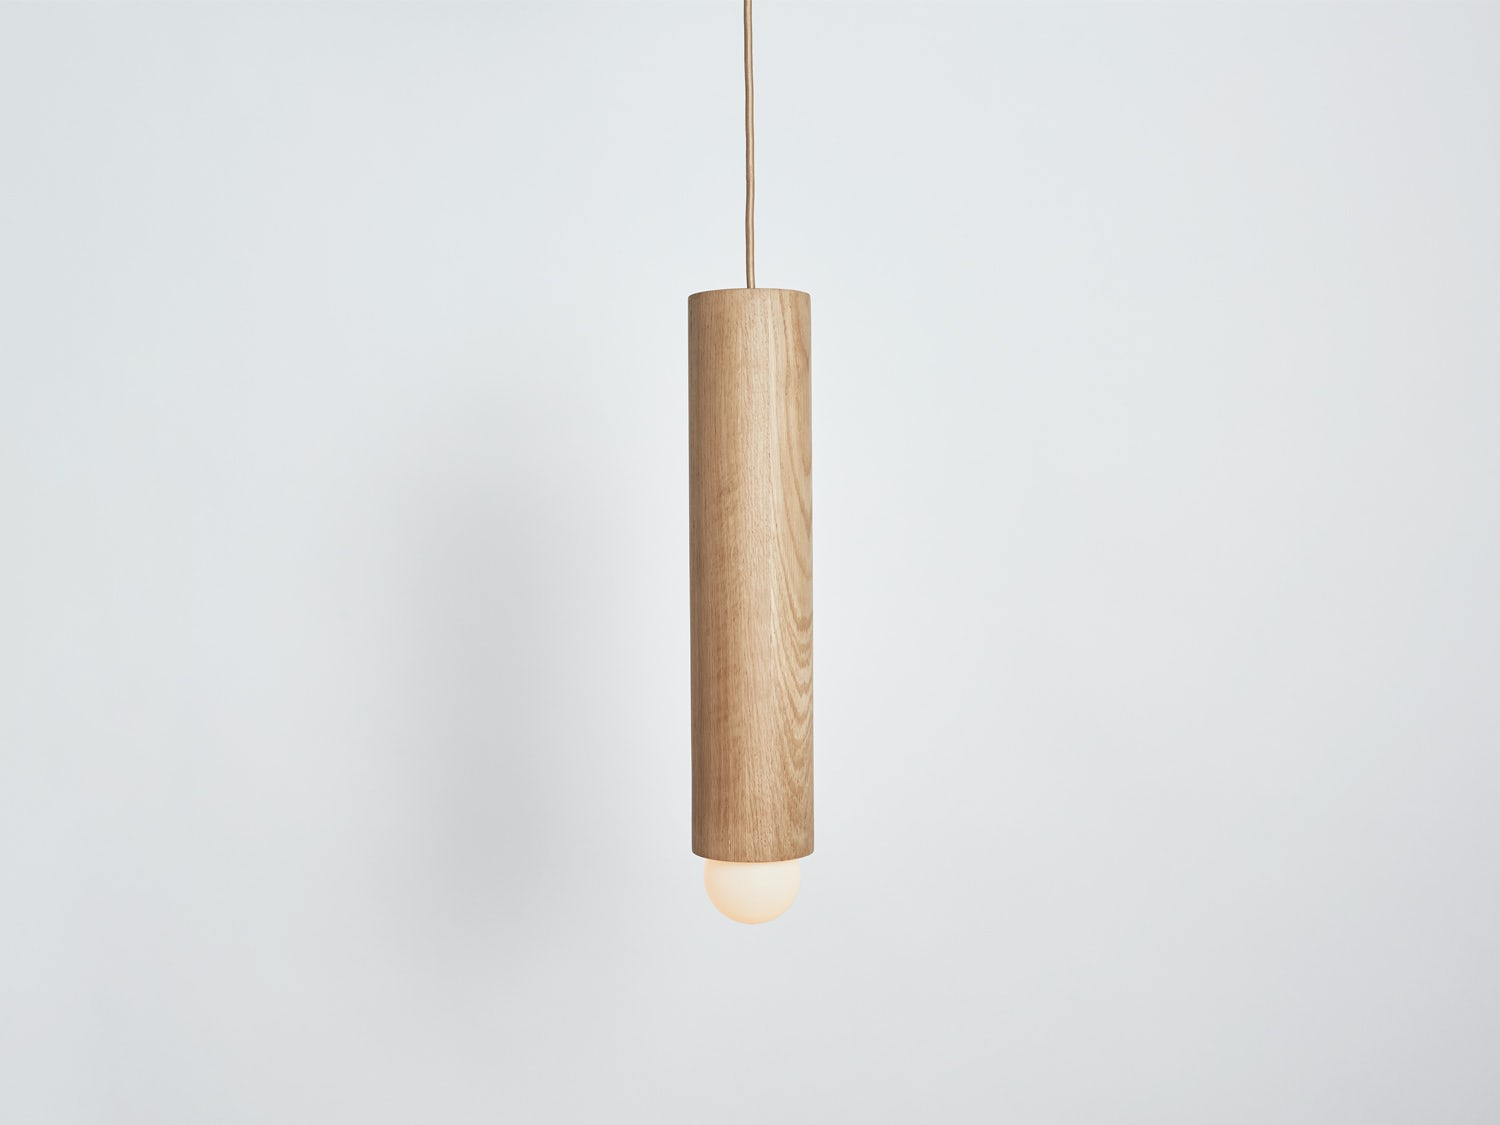 gallery image for Tower Pendant I